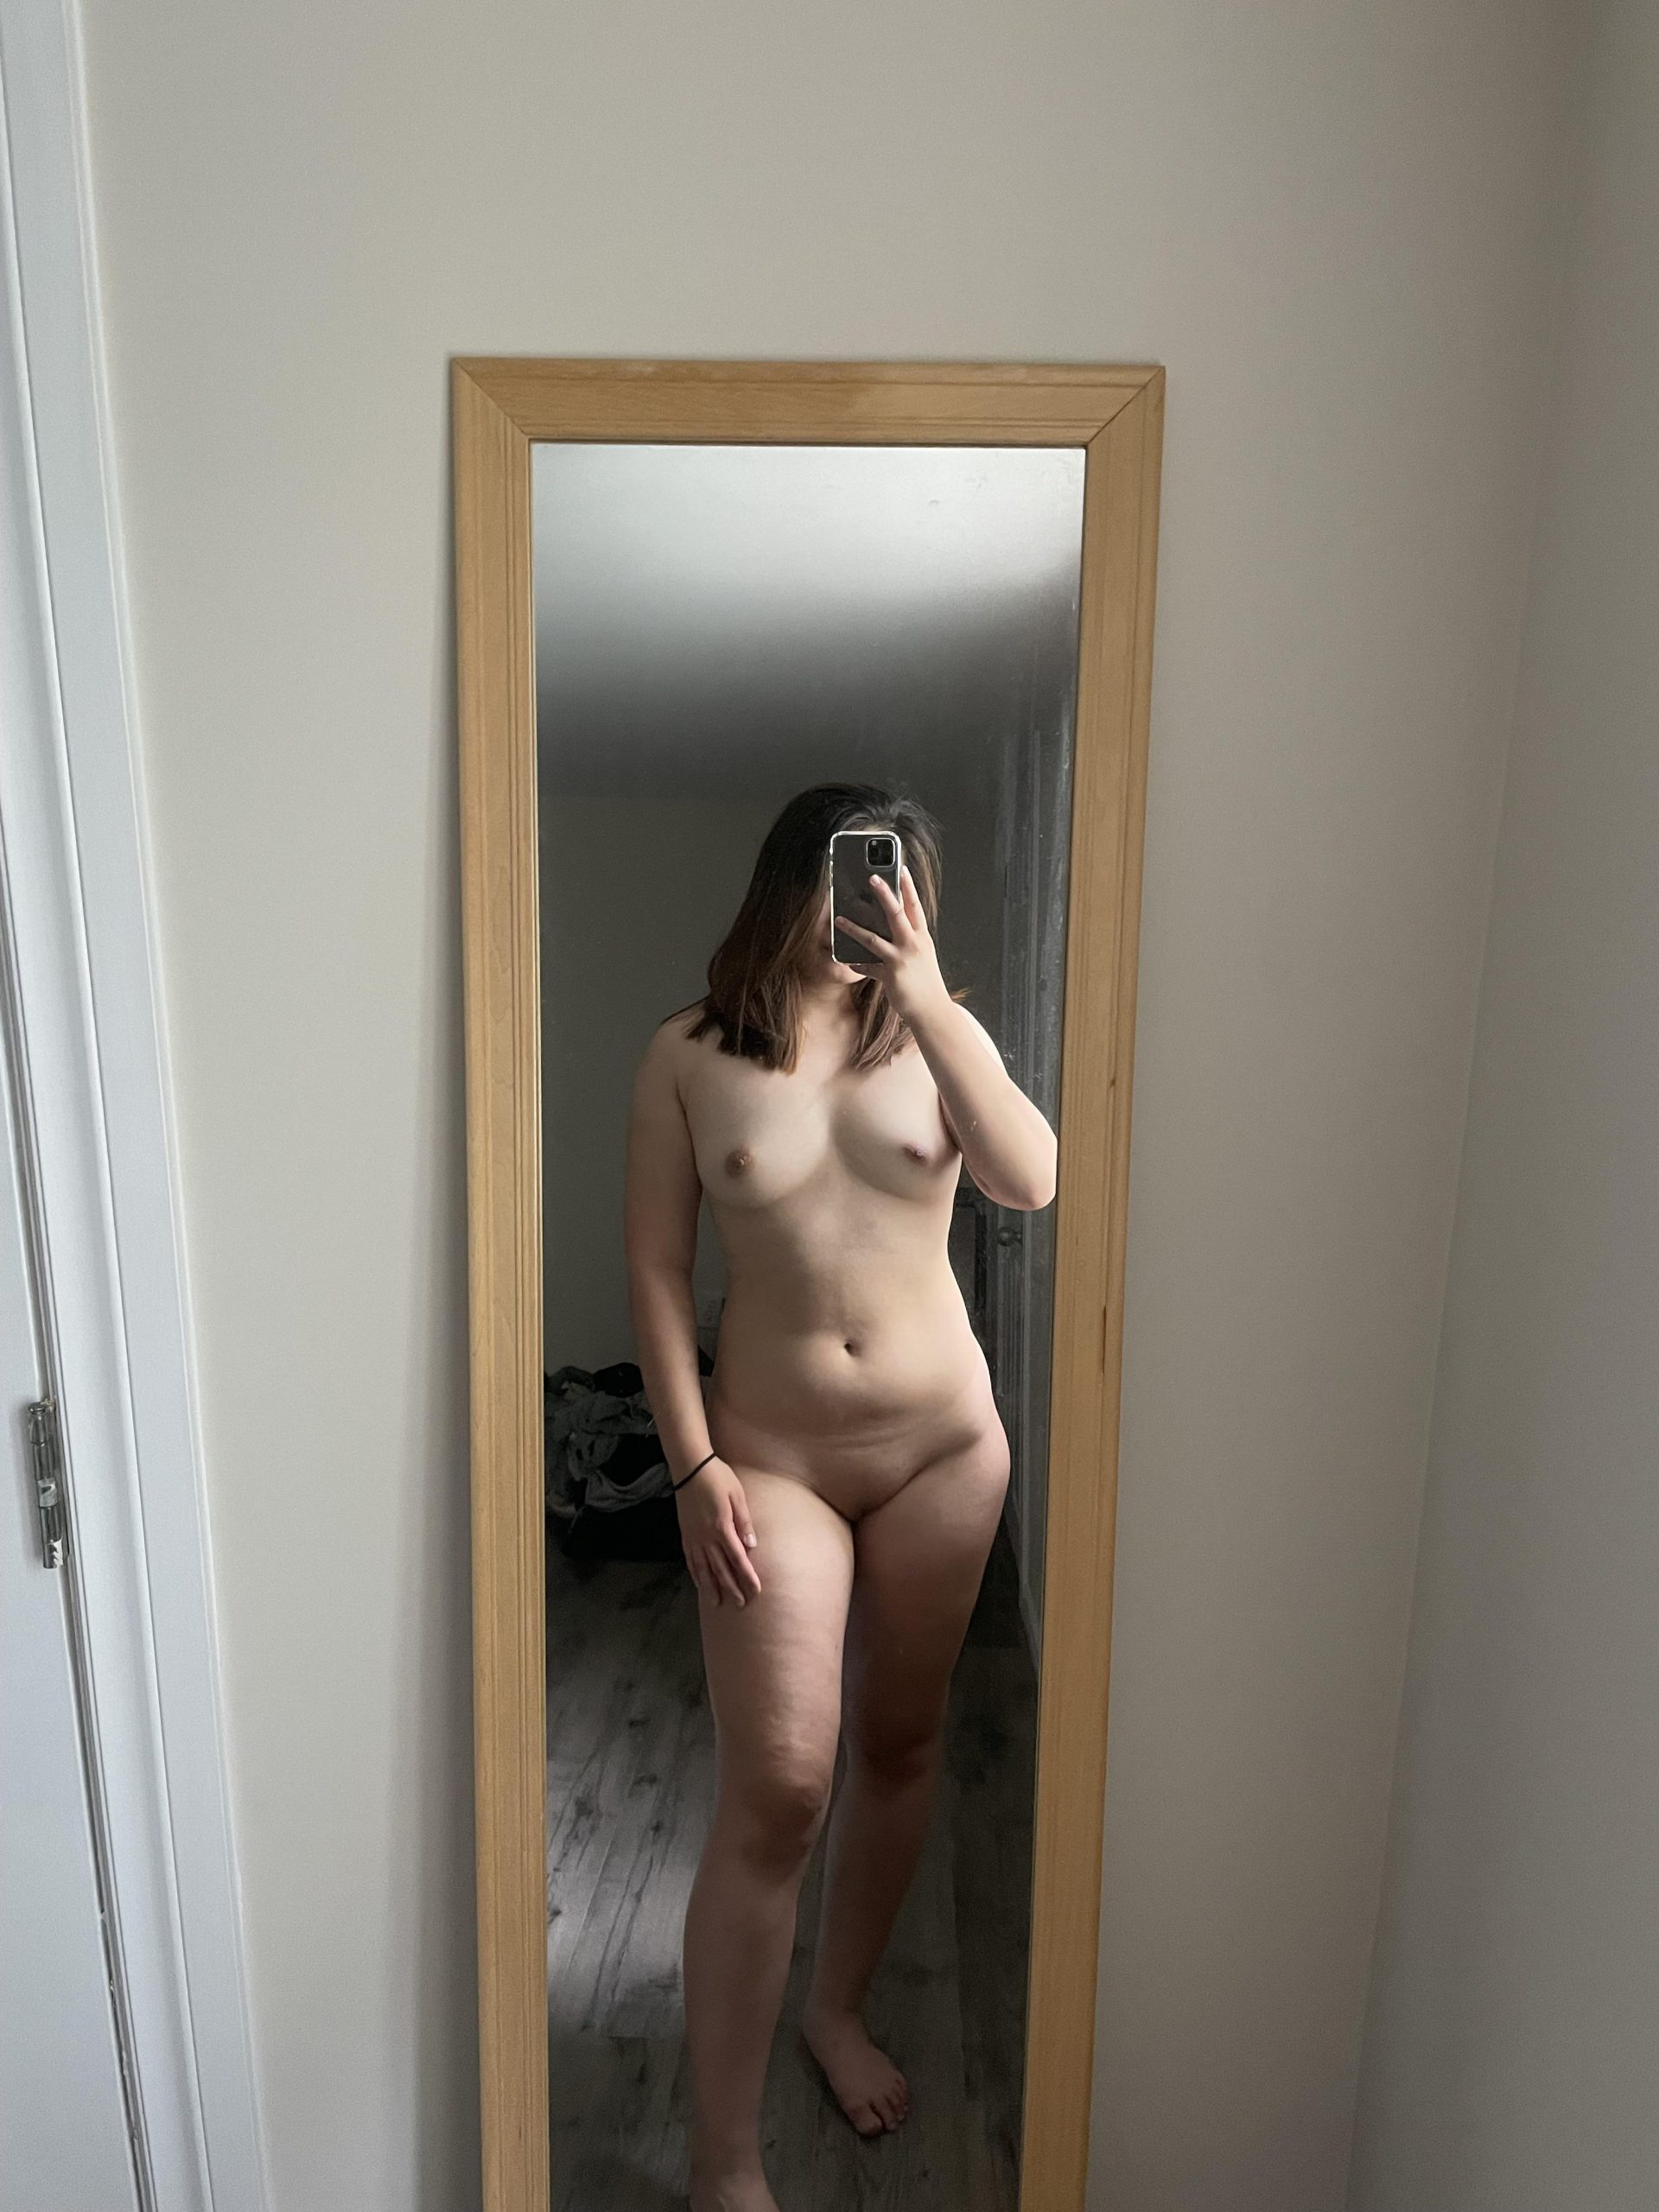 not the best looking body out there, but hopefully this nude can get some love still 🥺